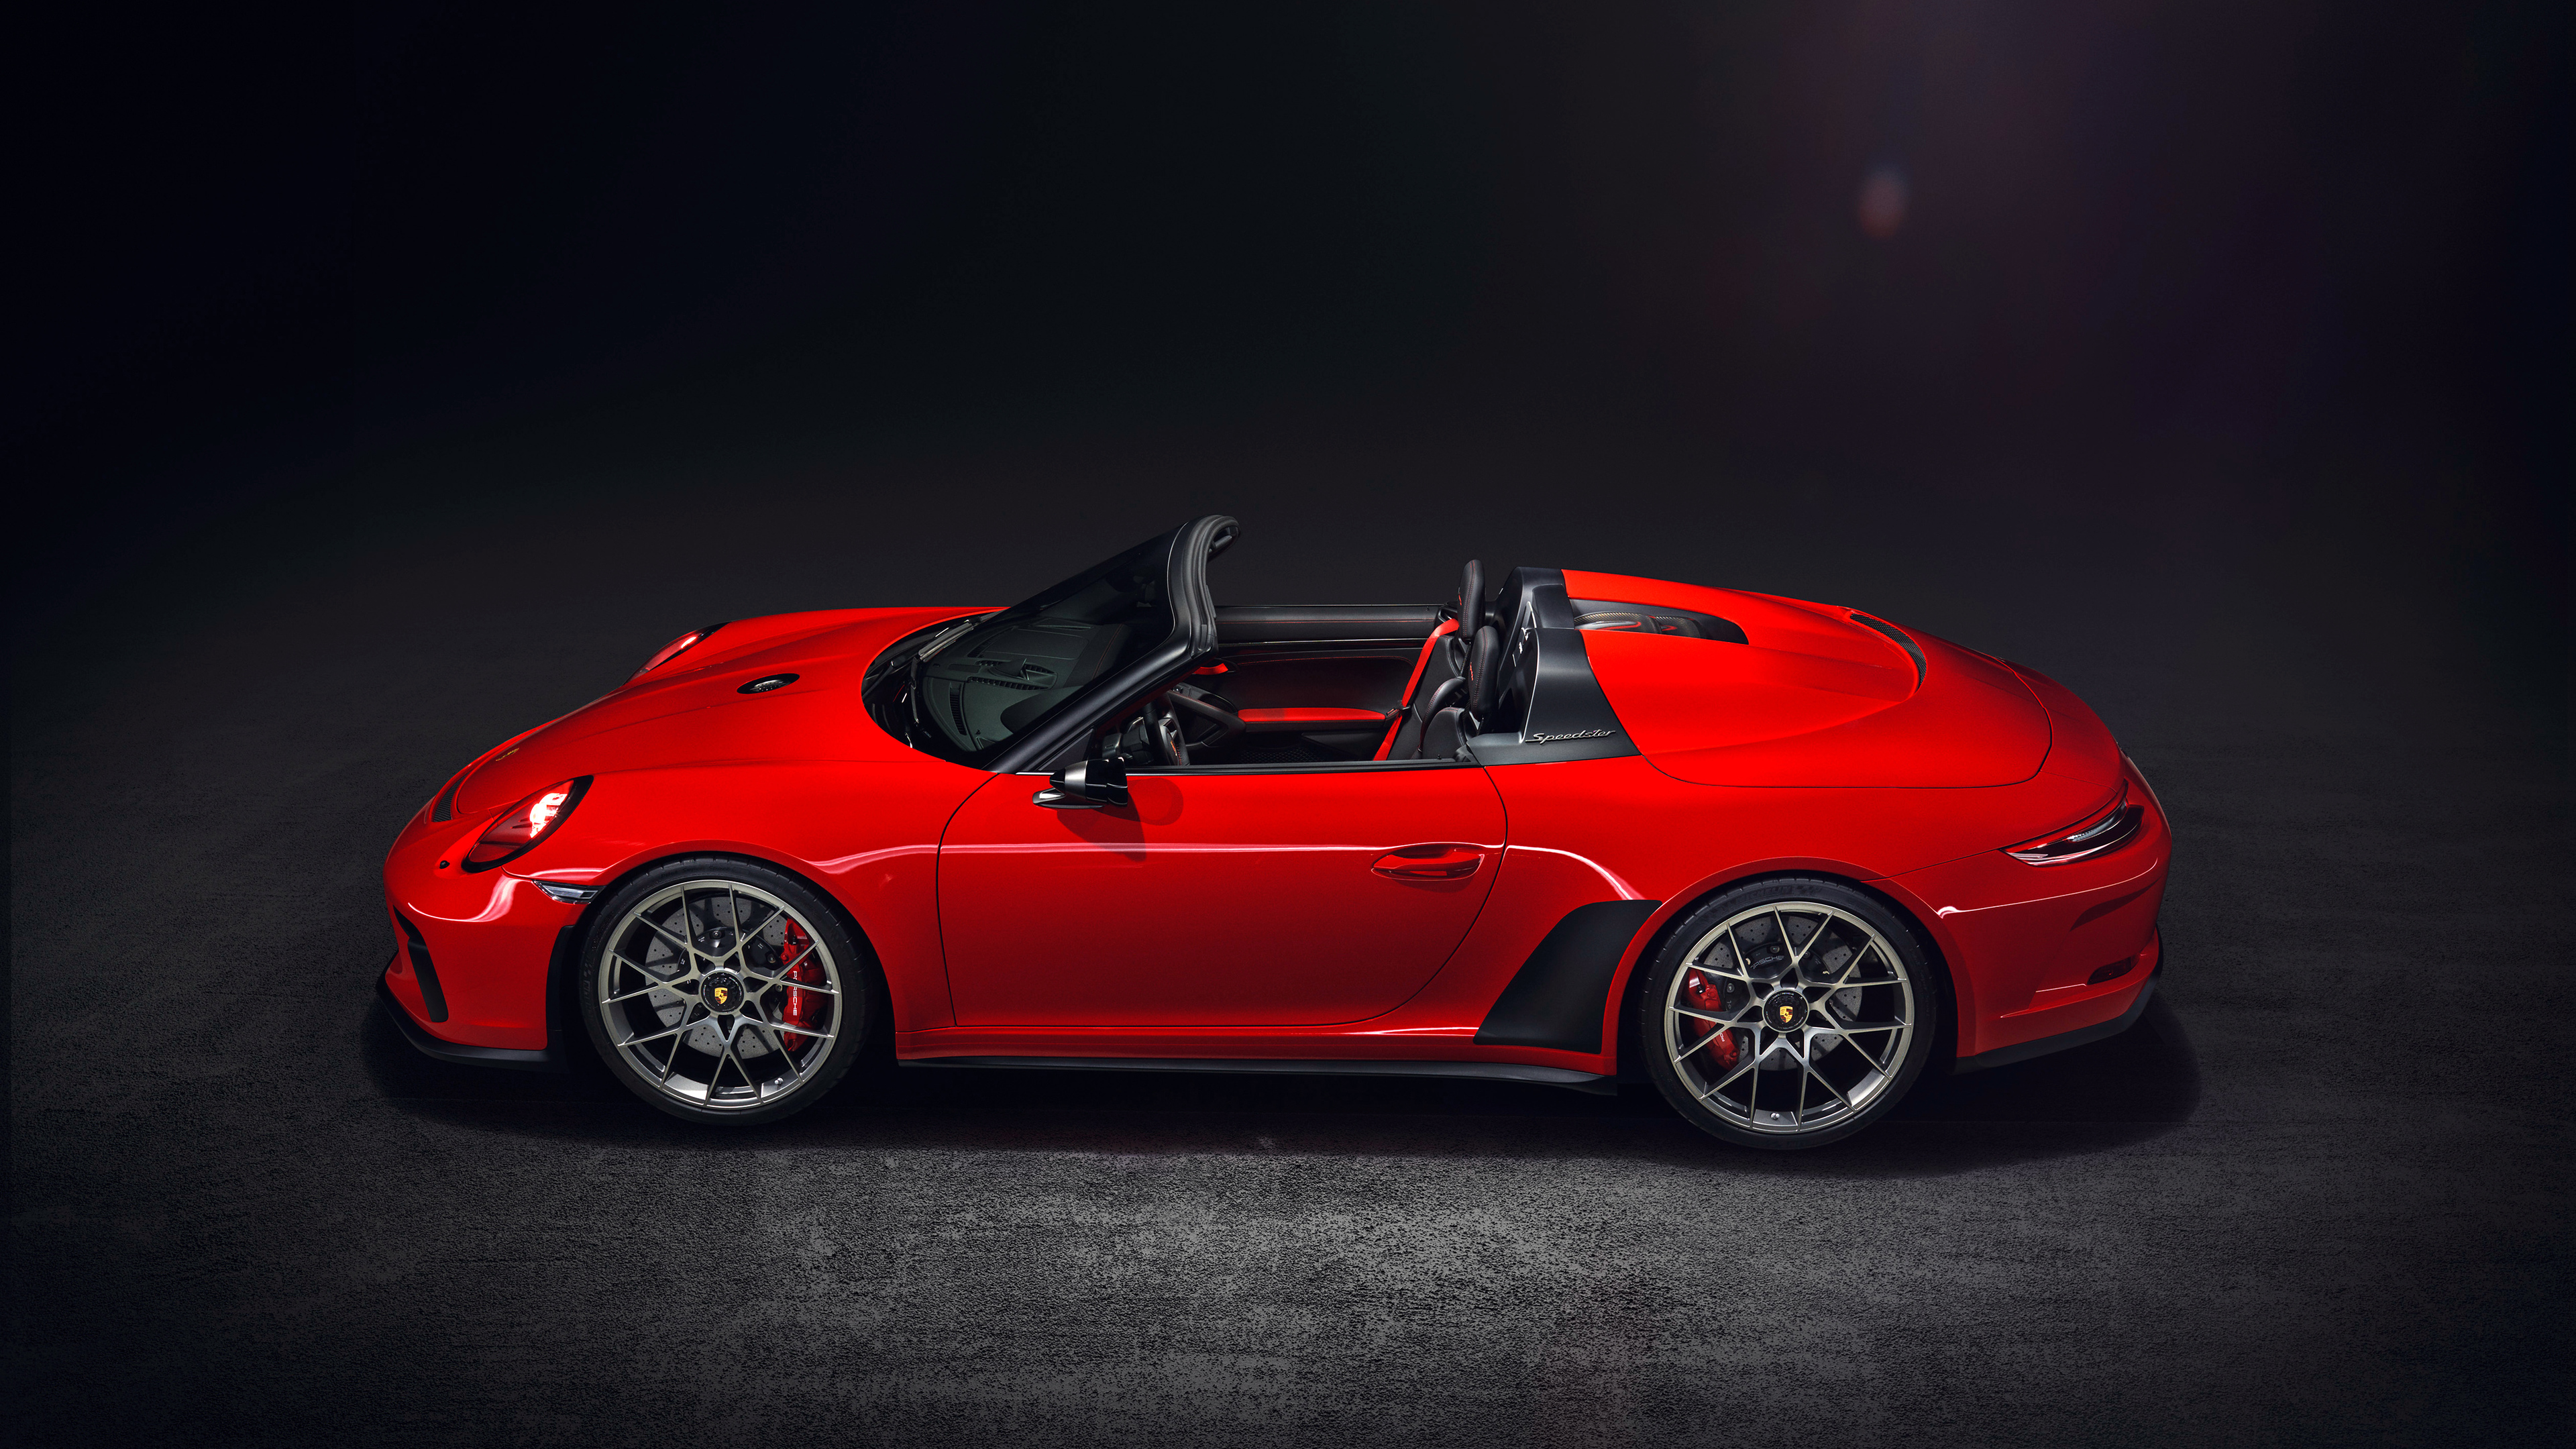 porsche 911 speedster concept ii 2018 side view 1539792819 - Porsche 911 Speedster Concept II 2018 Side View - porsche wallpapers, porsche 911 wallpapers, hd-wallpapers, cars wallpapers, 4k-wallpapers, 2018 cars wallpapers